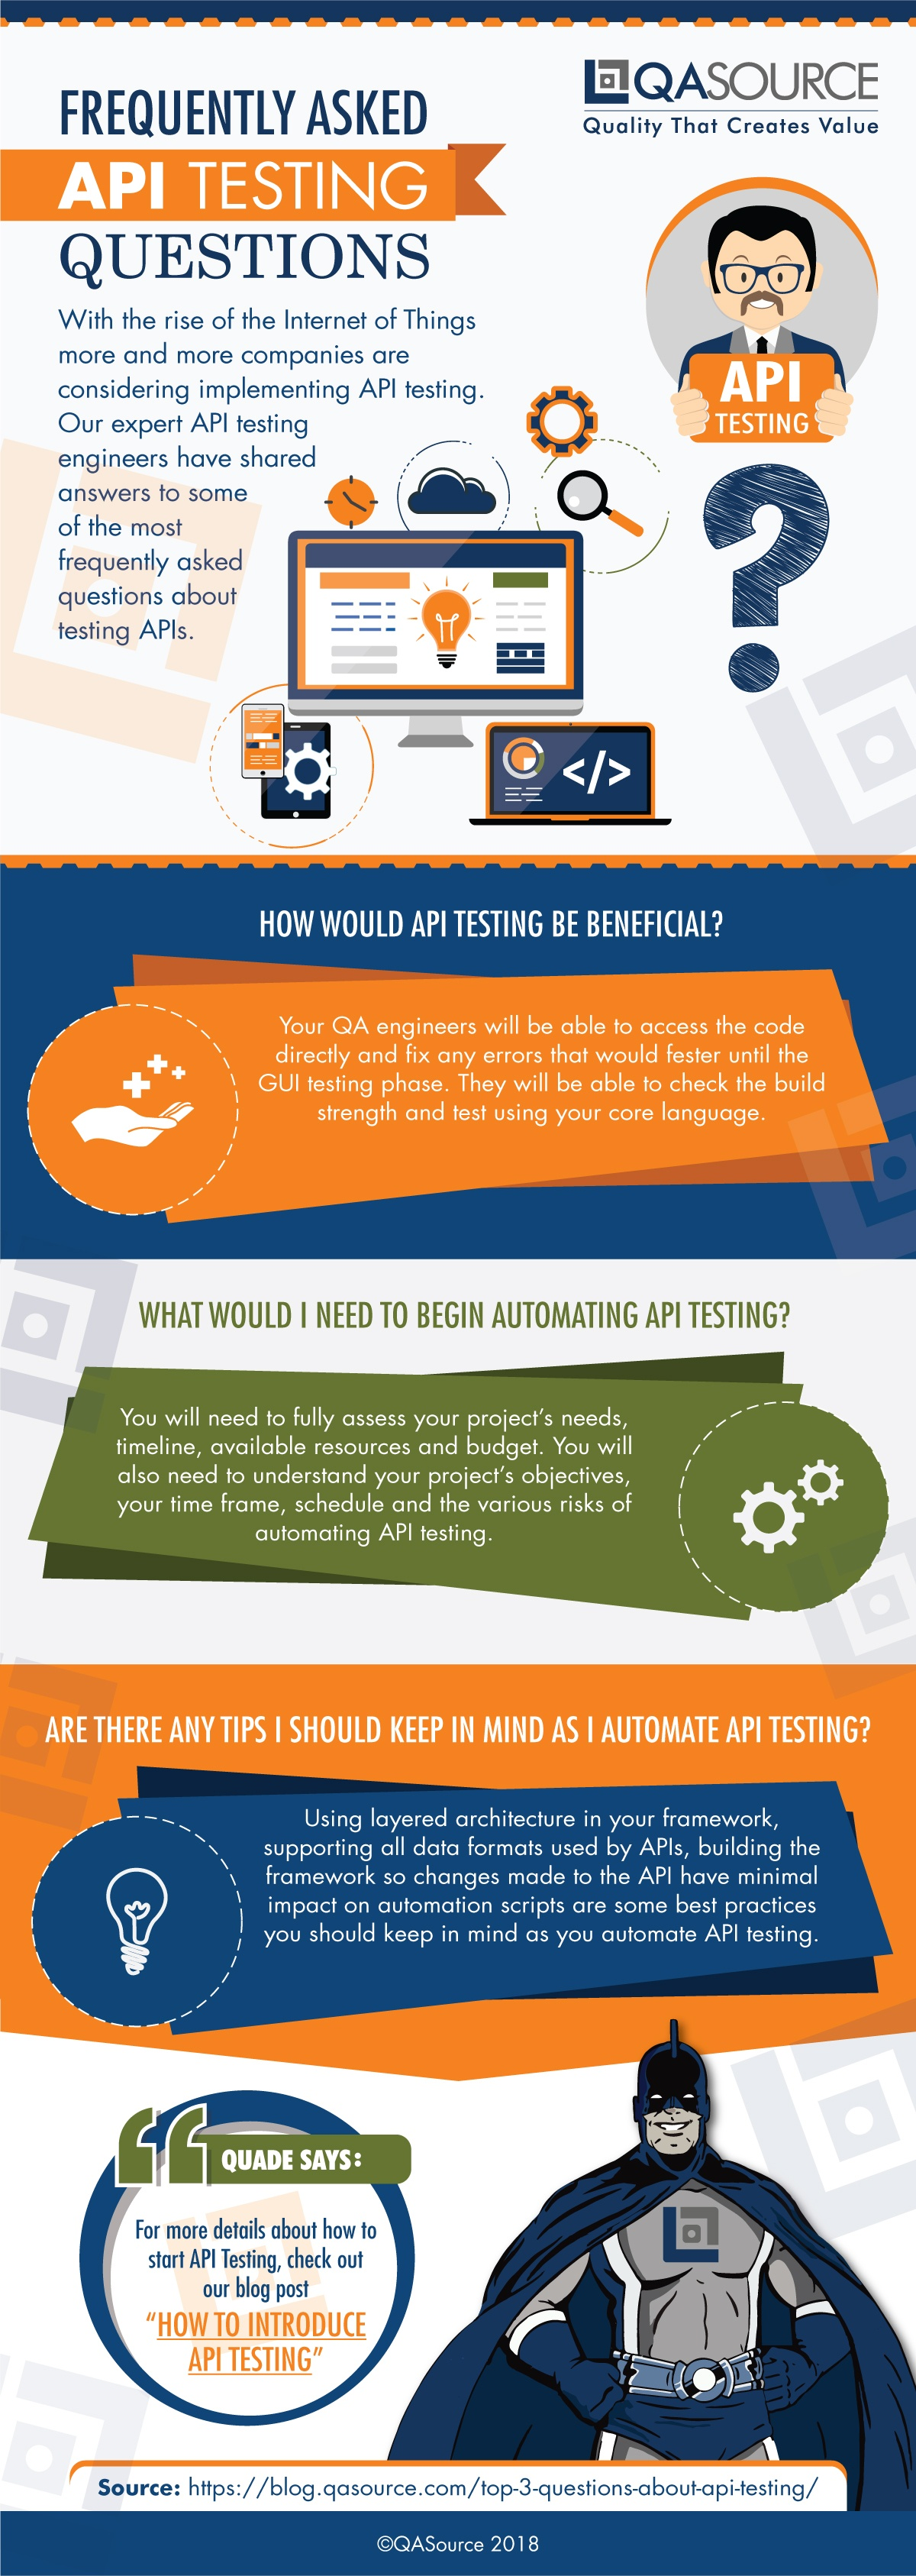 Frequently Asked API Testing Questions